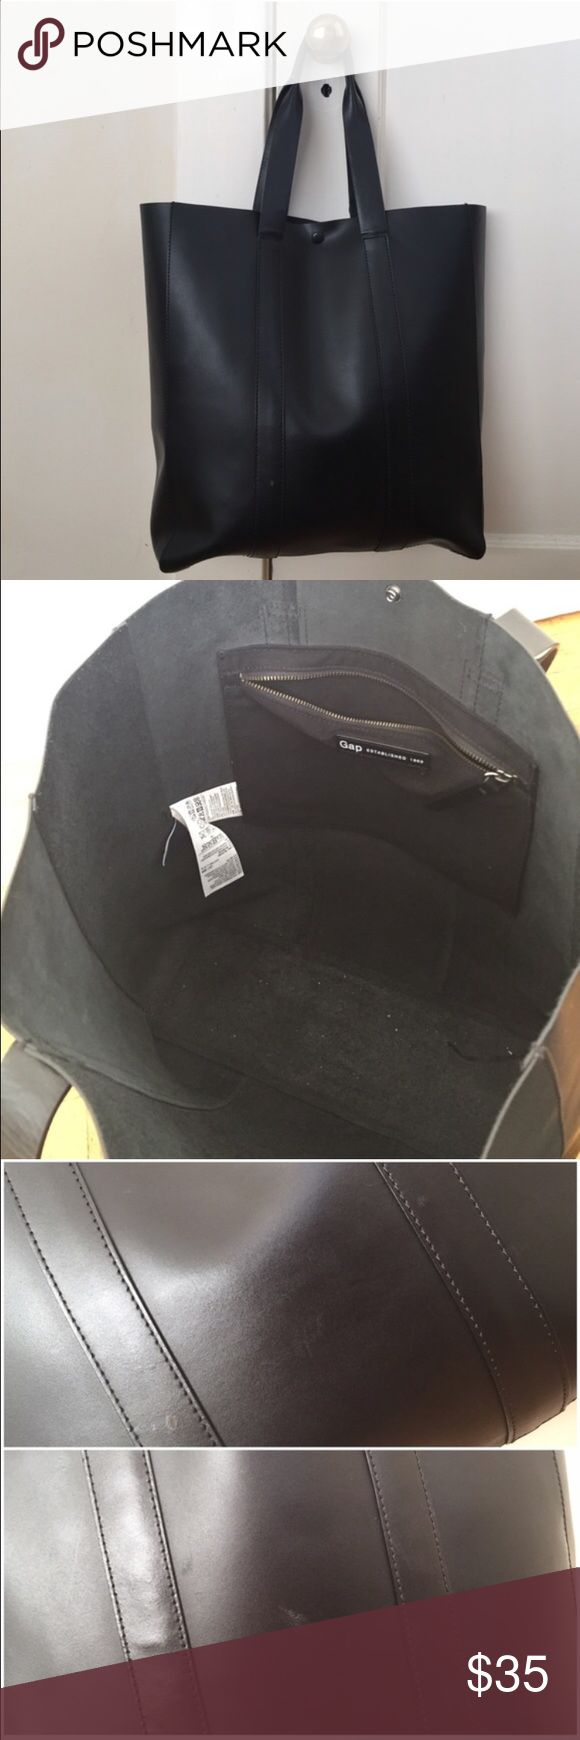 GAP sturdy black leather tote bag Repost from a cancelled sale, happy shopping! GAP Bags Totes